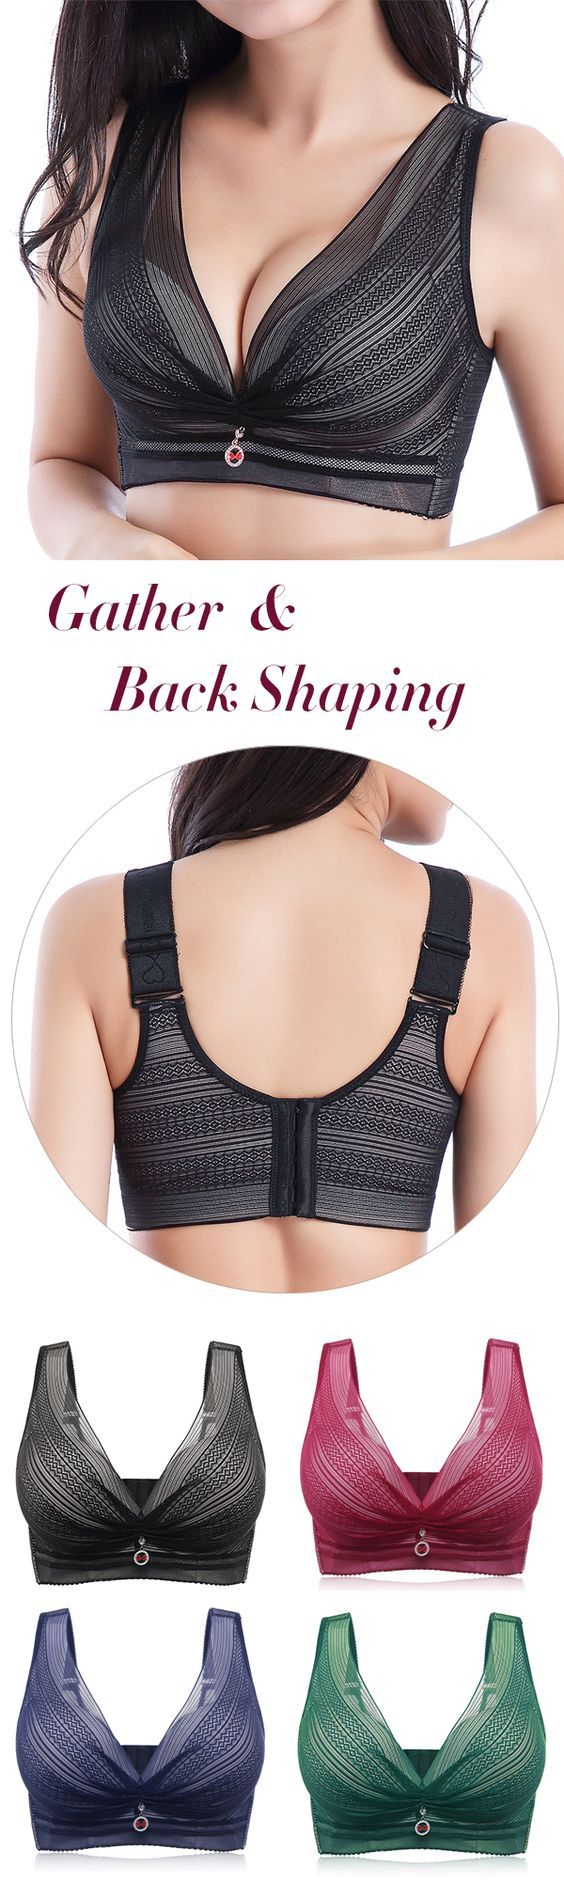 53%OFF&Free shipping. Plus Size Wireless Deep Plunge Gather Back Shaping Longlin…